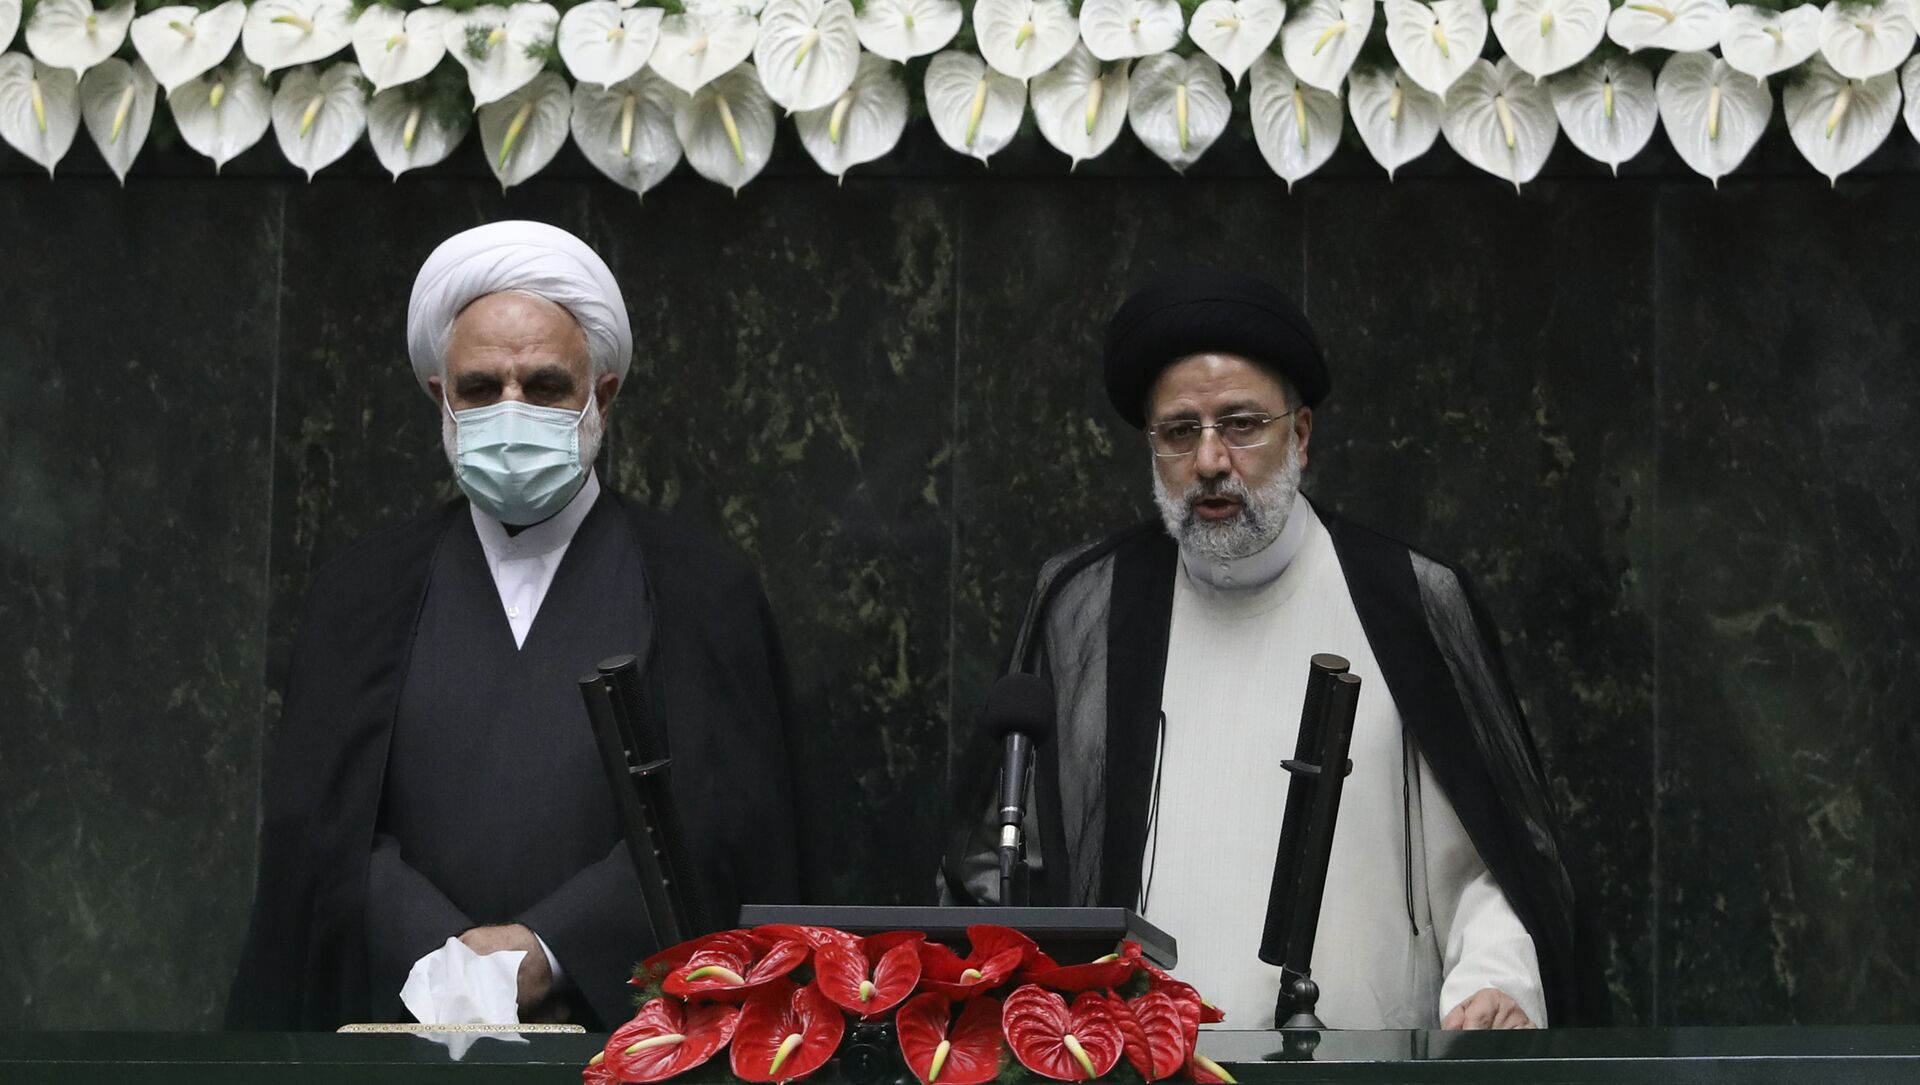 President Ebrahim Raisi, right, takes his oath as president, as Judiciary Chief Gholamhossein Mohseni Ejehi listens in a ceremony at the parliament in Tehran, Iran, Thursday, Aug. 5, 2021.  - Sputnik International, 1920, 05.08.2021